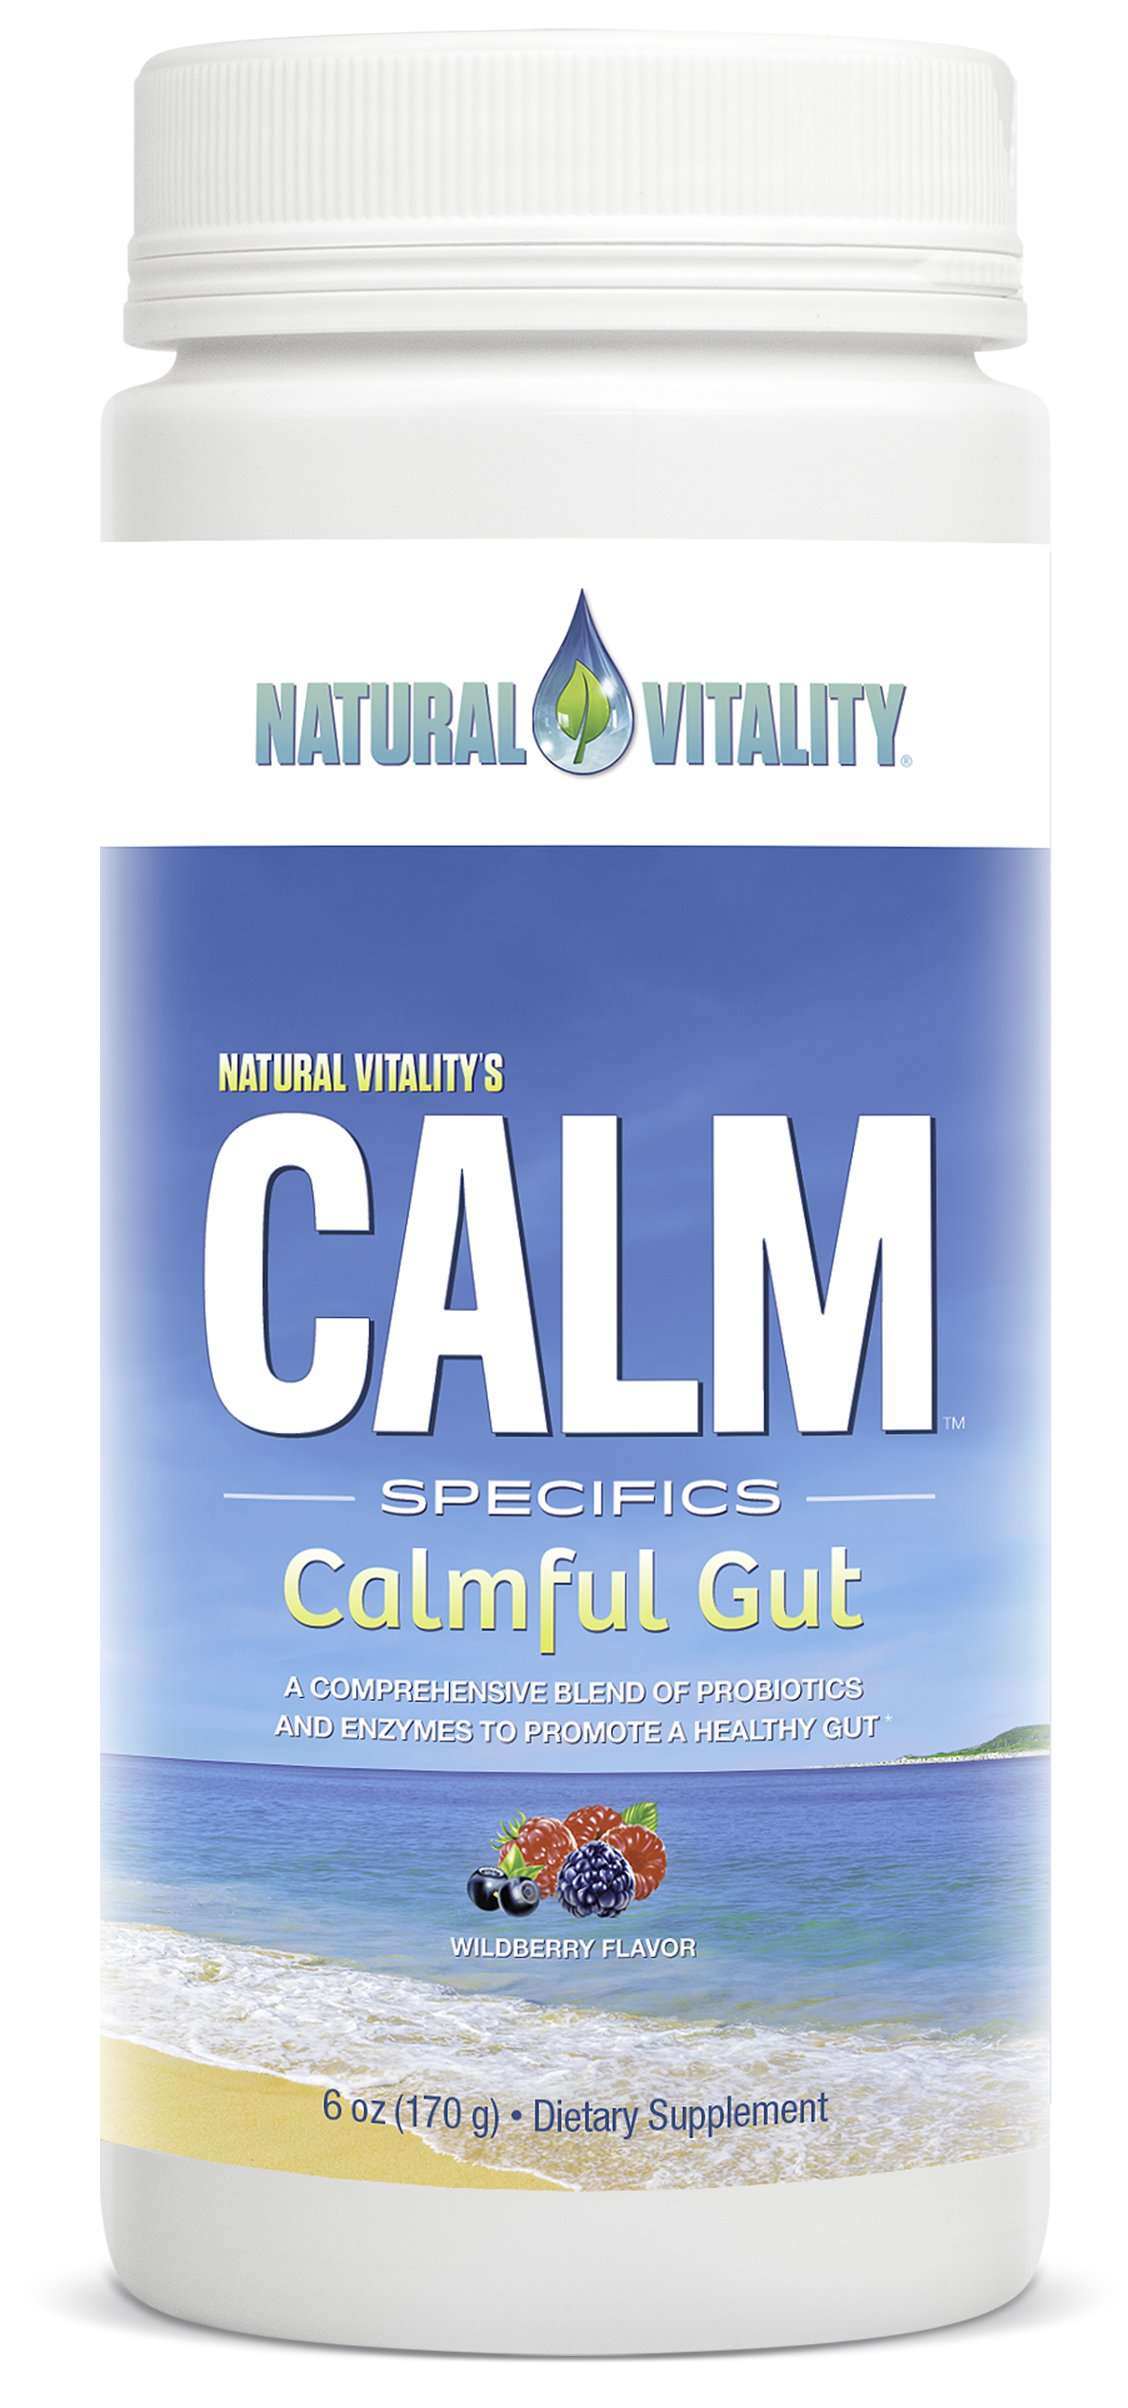 Natural Vitality CALM Specifics Calmful Gut - Probiotics and Enzymes for a Healthy Gut - Wildberry, 6 oz